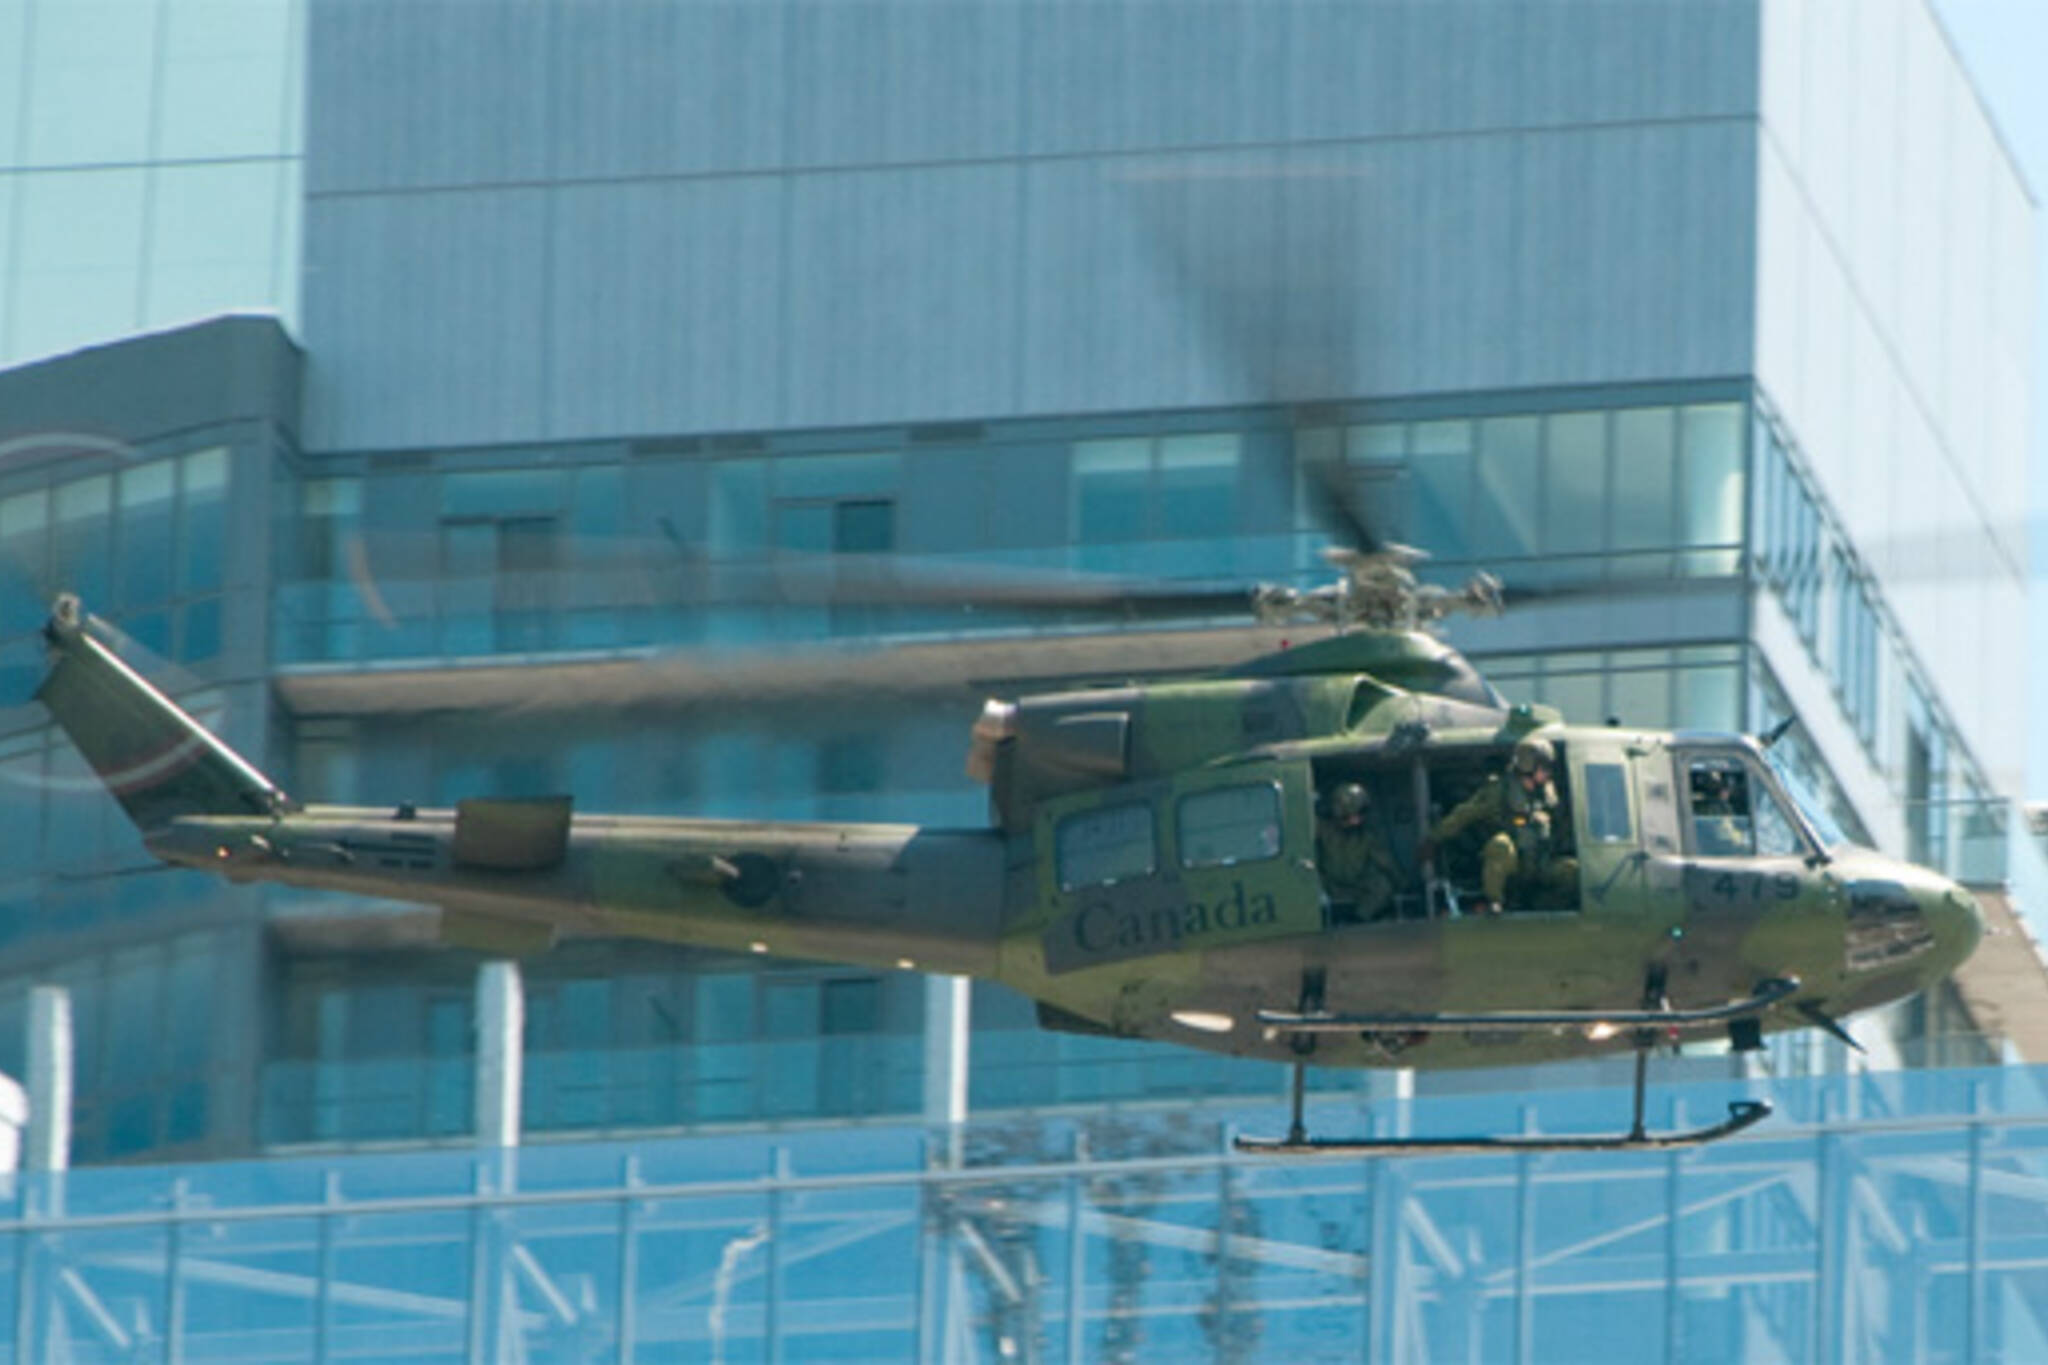 g20 helicopters toronto